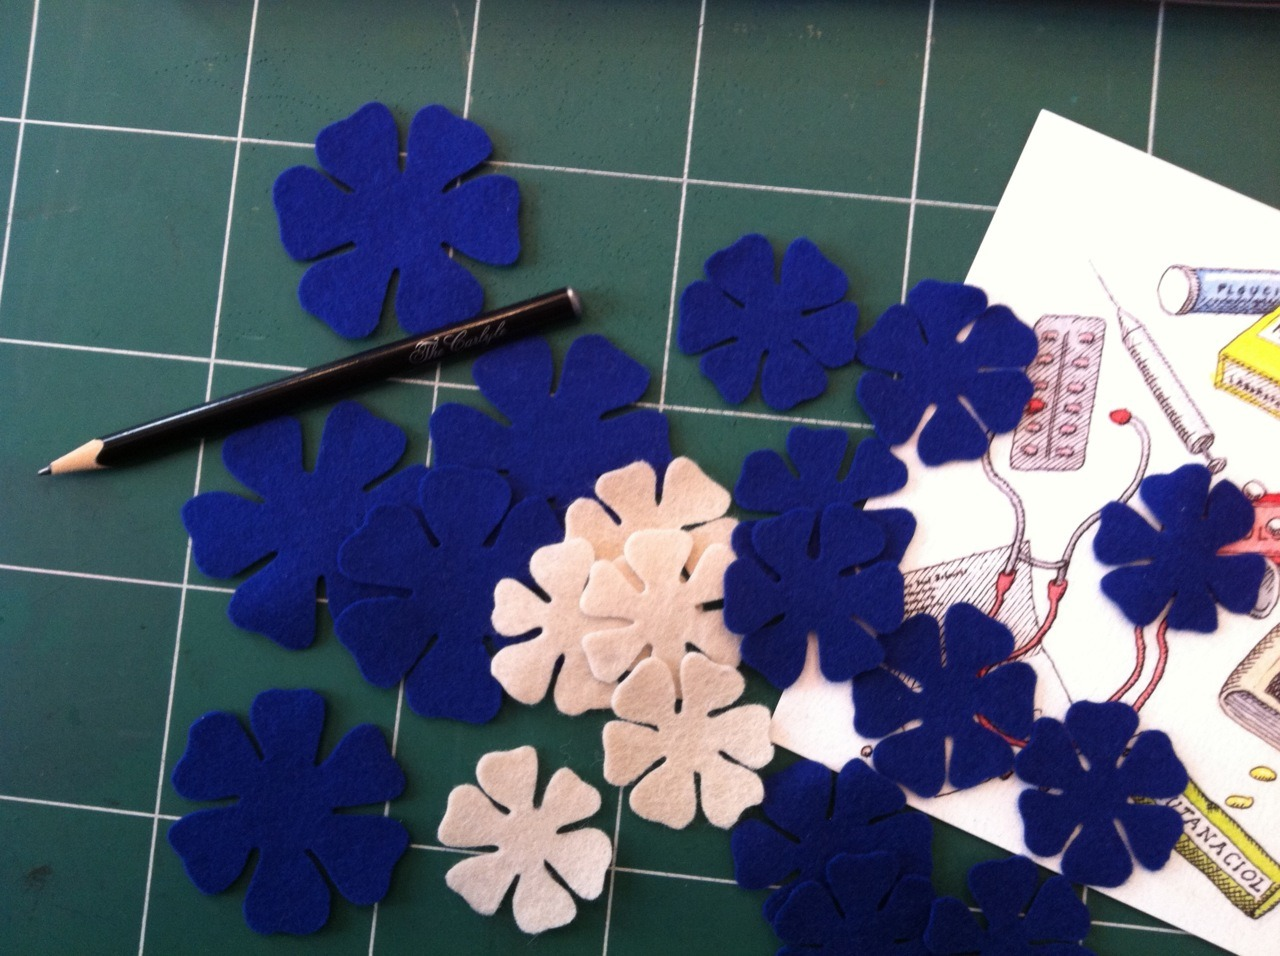 Cutting out felt flowers for the new collection of OLT hairbands.